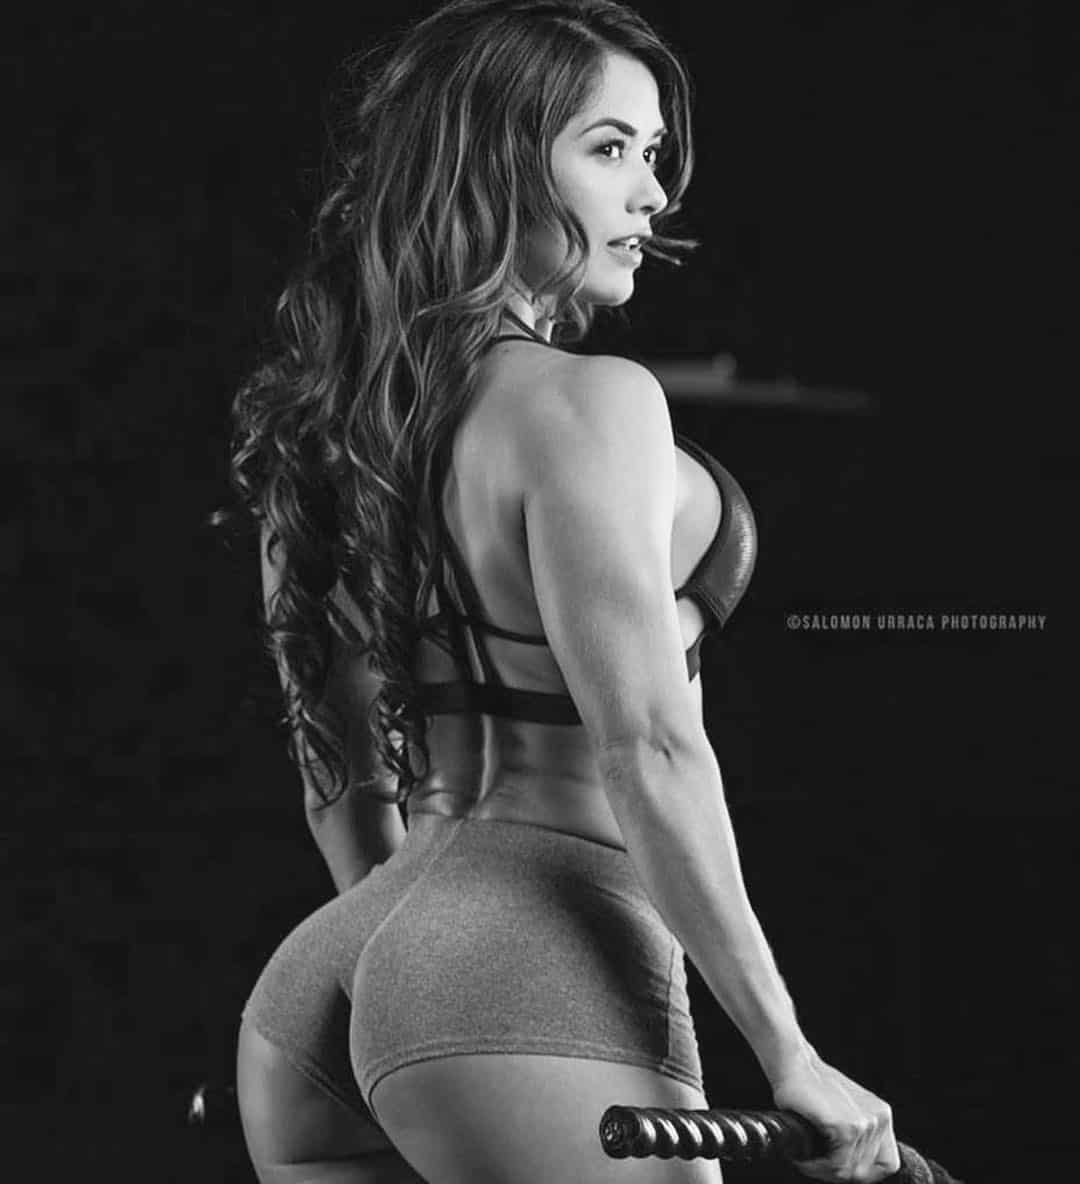 Tatiana Girardi working out